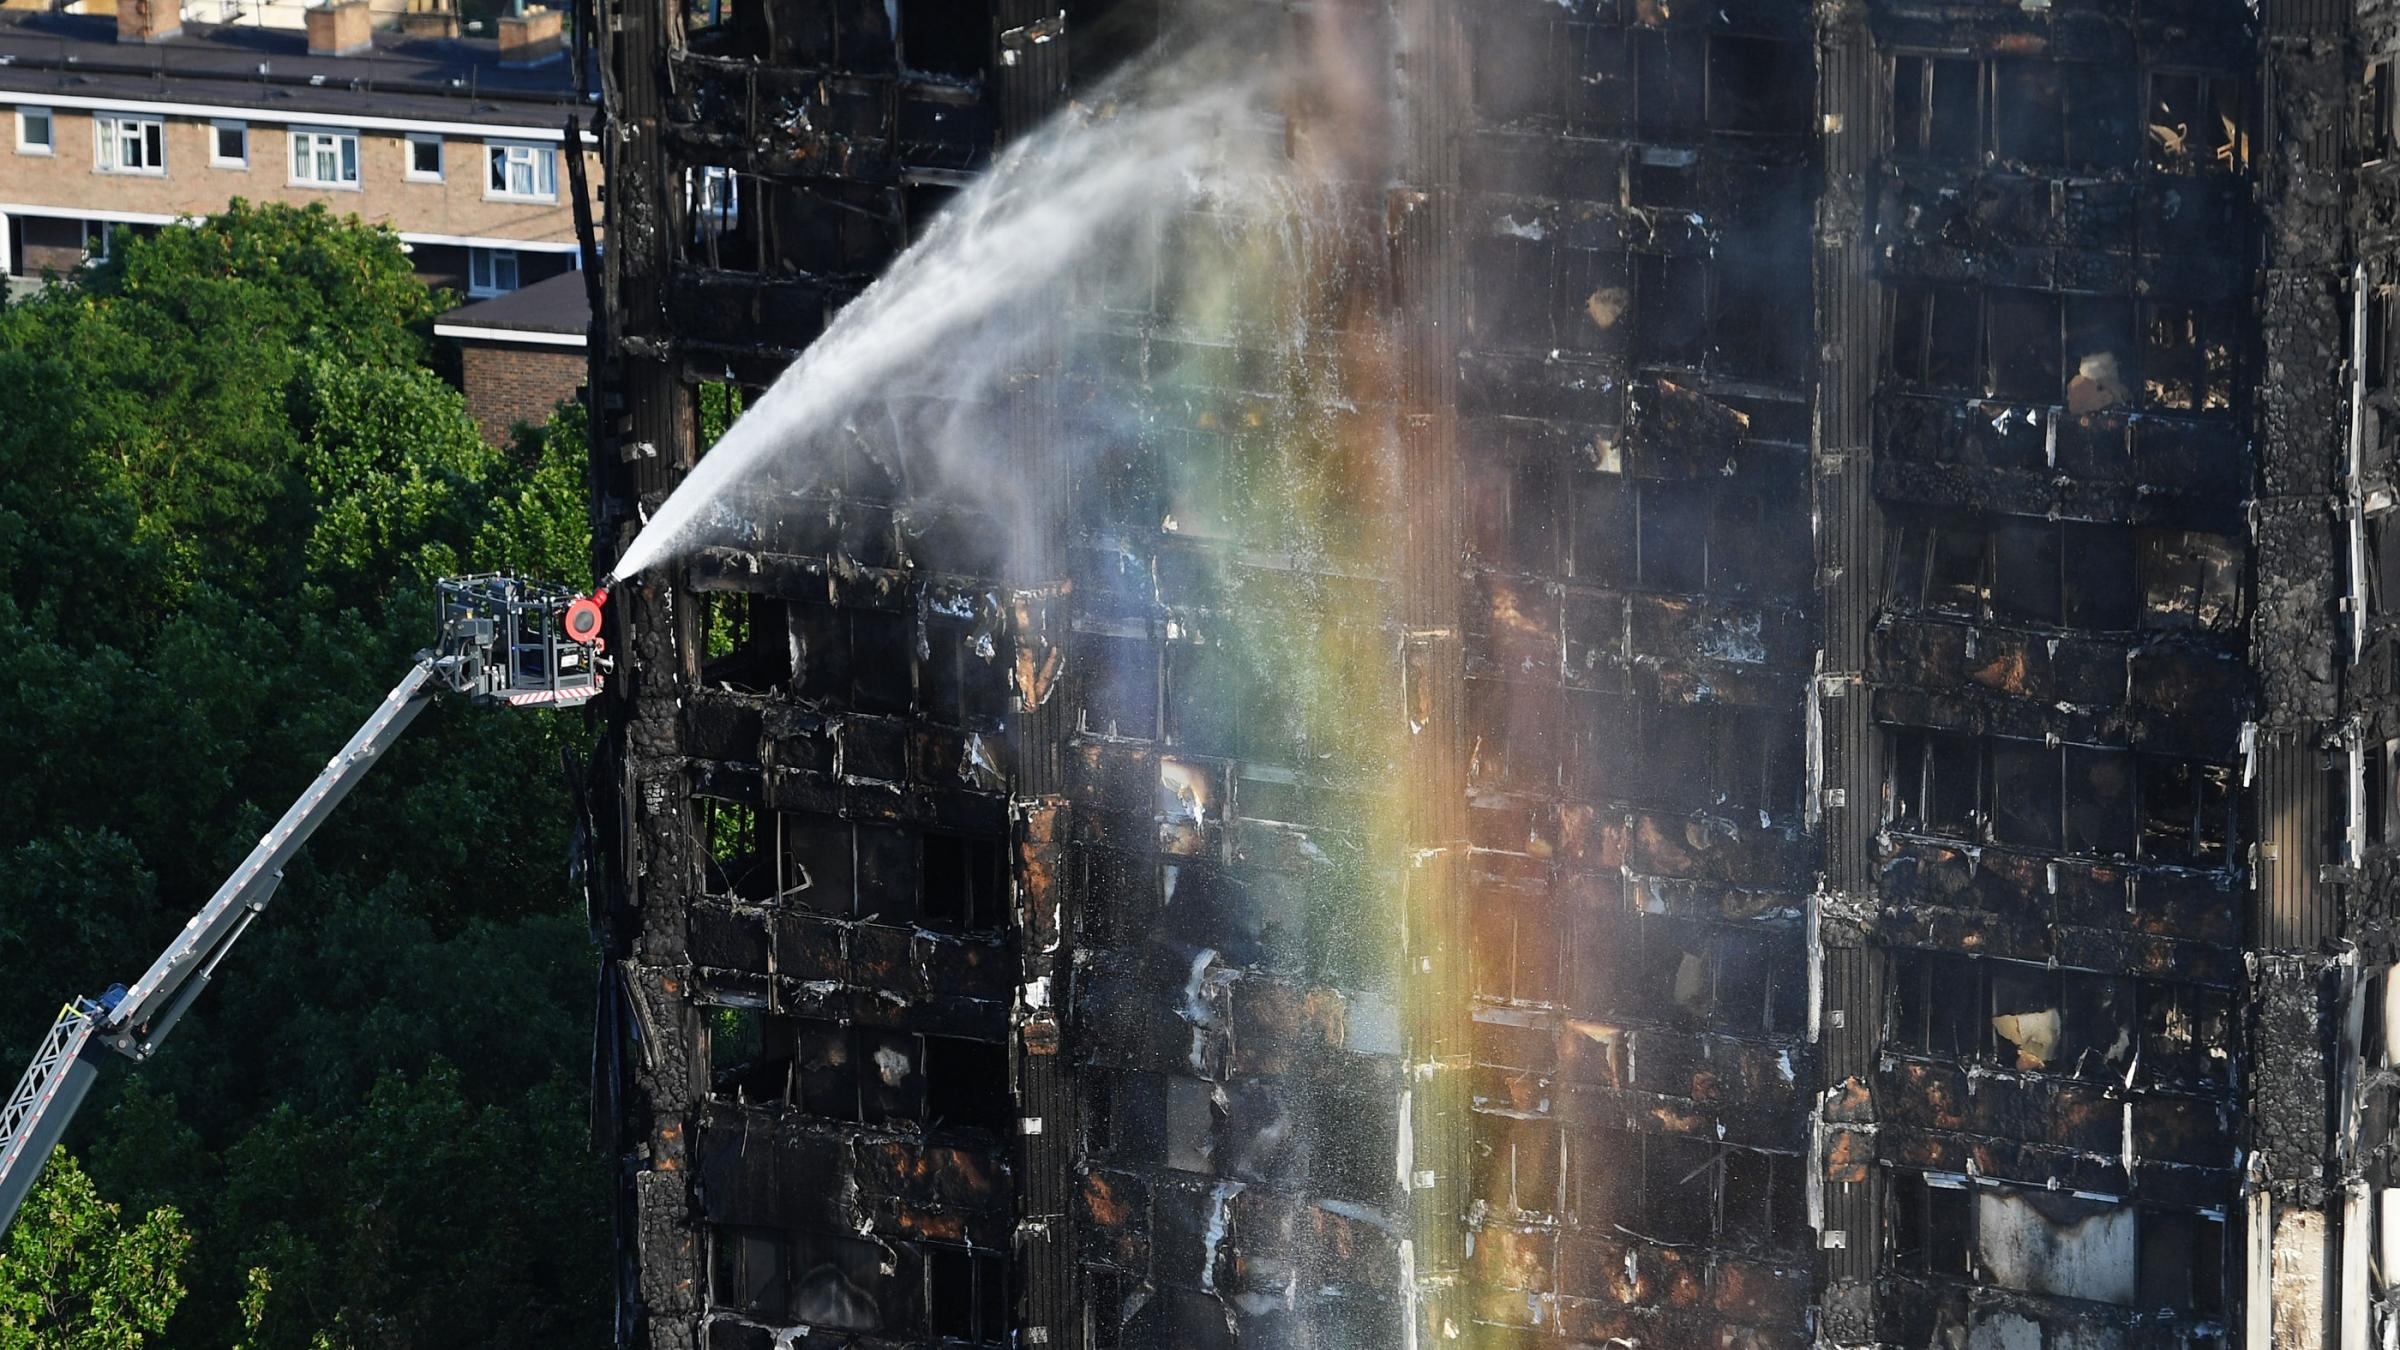 London's Grenfell Tower fire death toll rises to 17